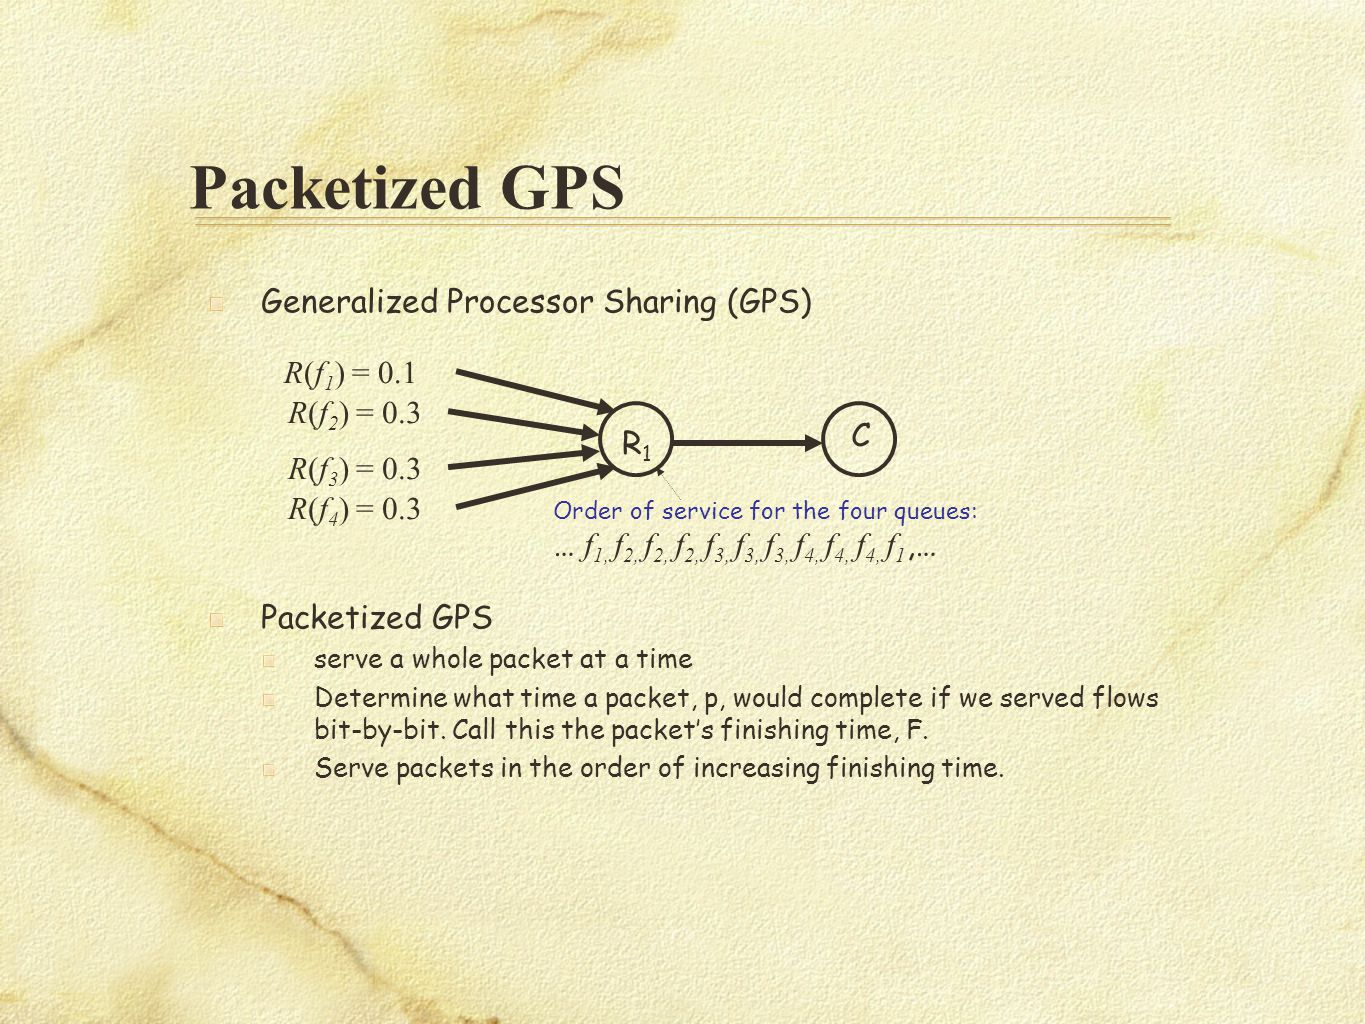 Packetized GPS R(f 1 ) = 0.1 R(f 3 ) = 0.3 R1R1 C R(f 4 ) = 0.3 R(f 2 ) = 0.3 Order of service for the four queues: … f 1, f 2, f 2, f 2, f 3, f 3, f